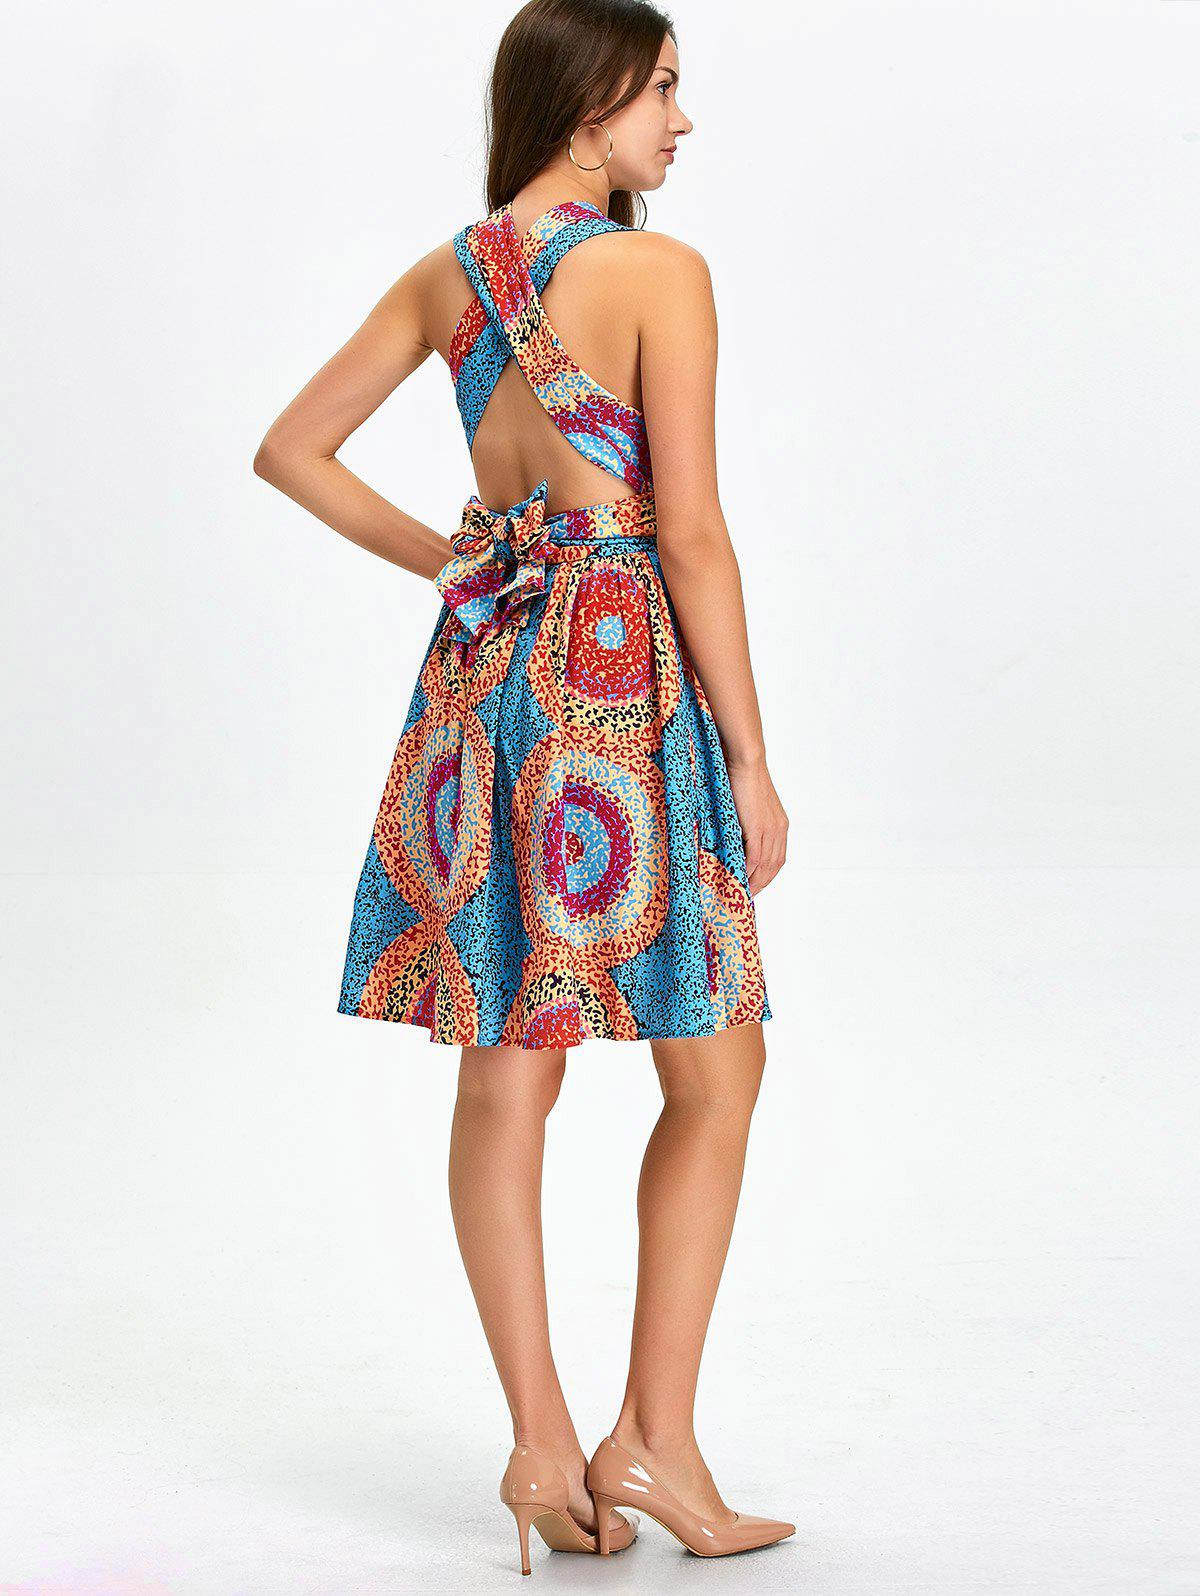 Open Back Knee Length Convertible Cocktail Dress - multicolor L